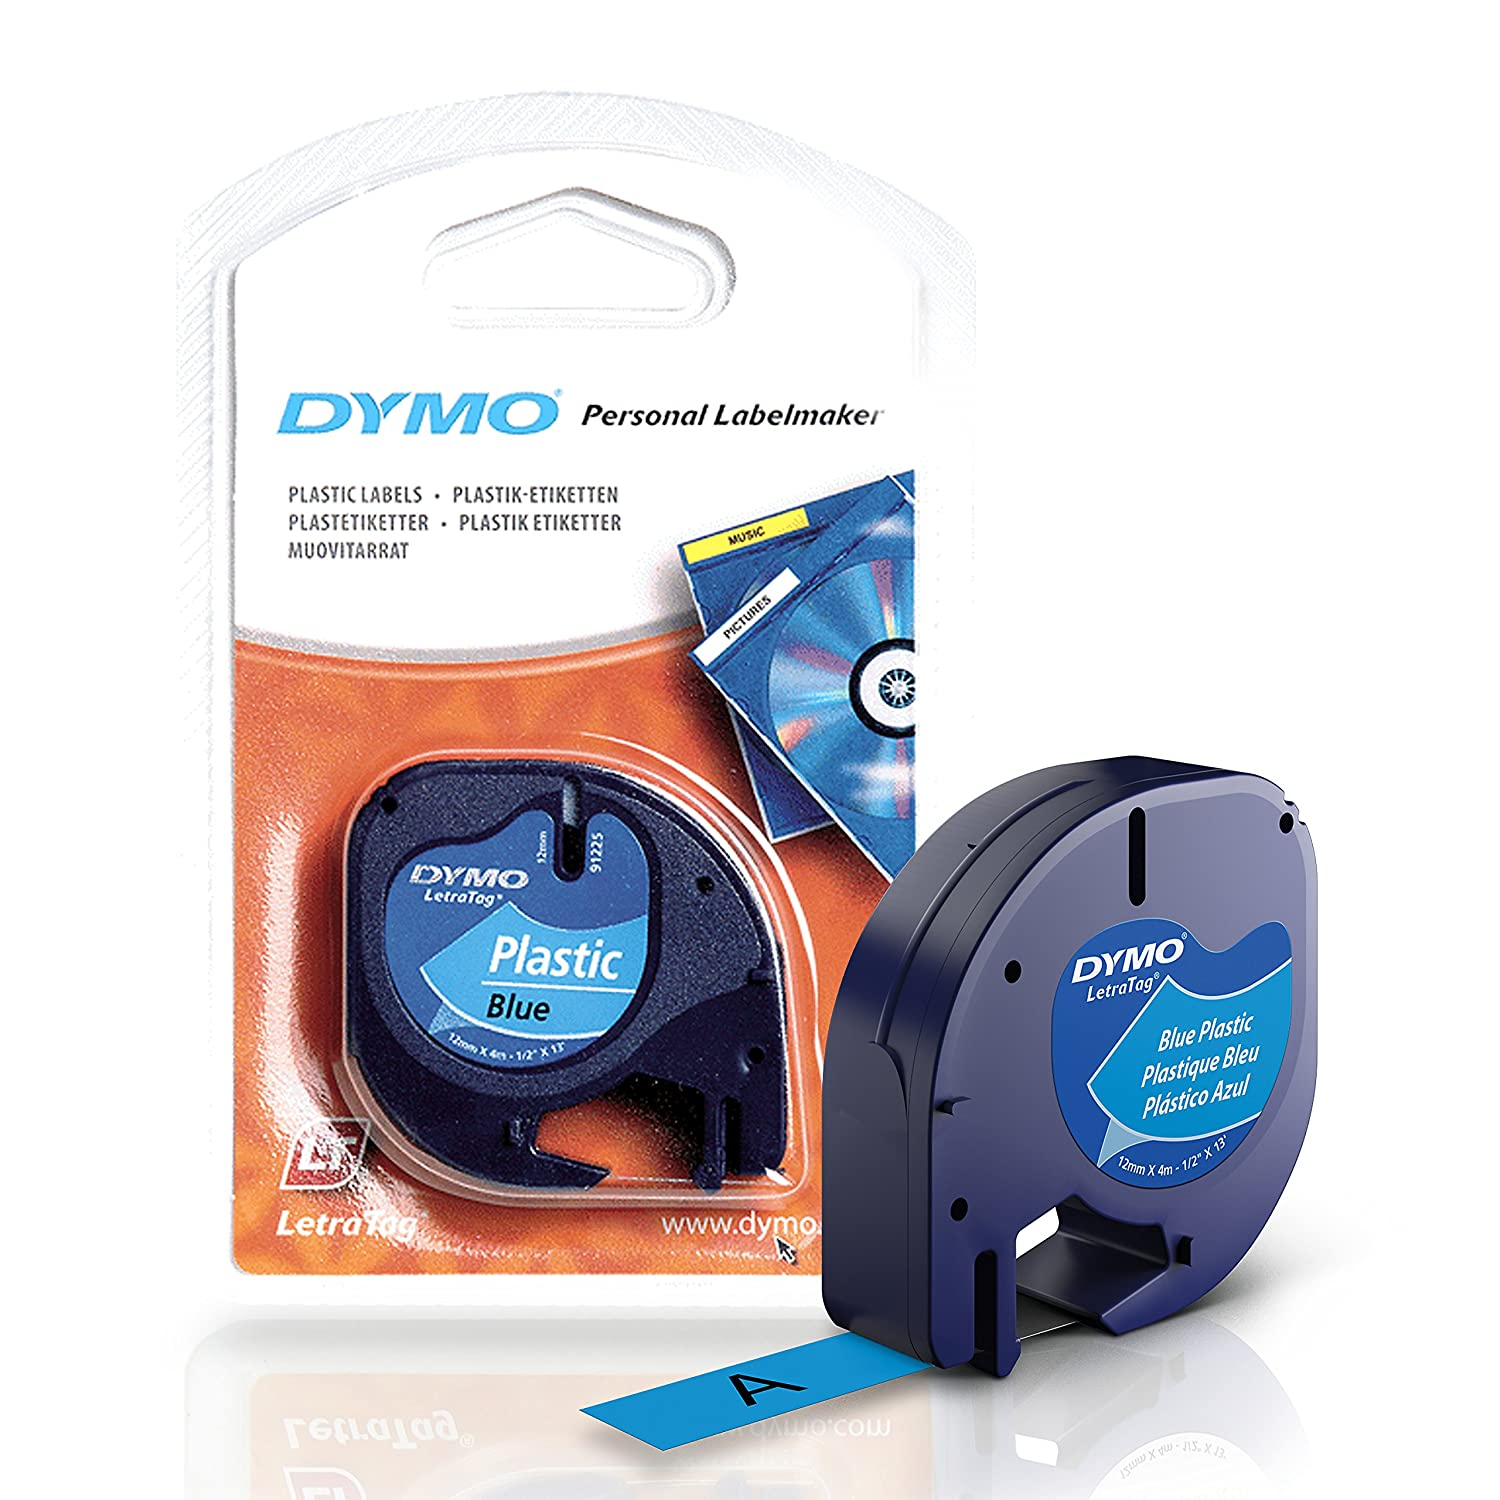 DYMO LetraTag Labeling Tape for LetraTag Label Makers, Black print on White paper tape, 1/2'' W x 13' L, 2 rolls (10697) 1/2'' W x 13' L